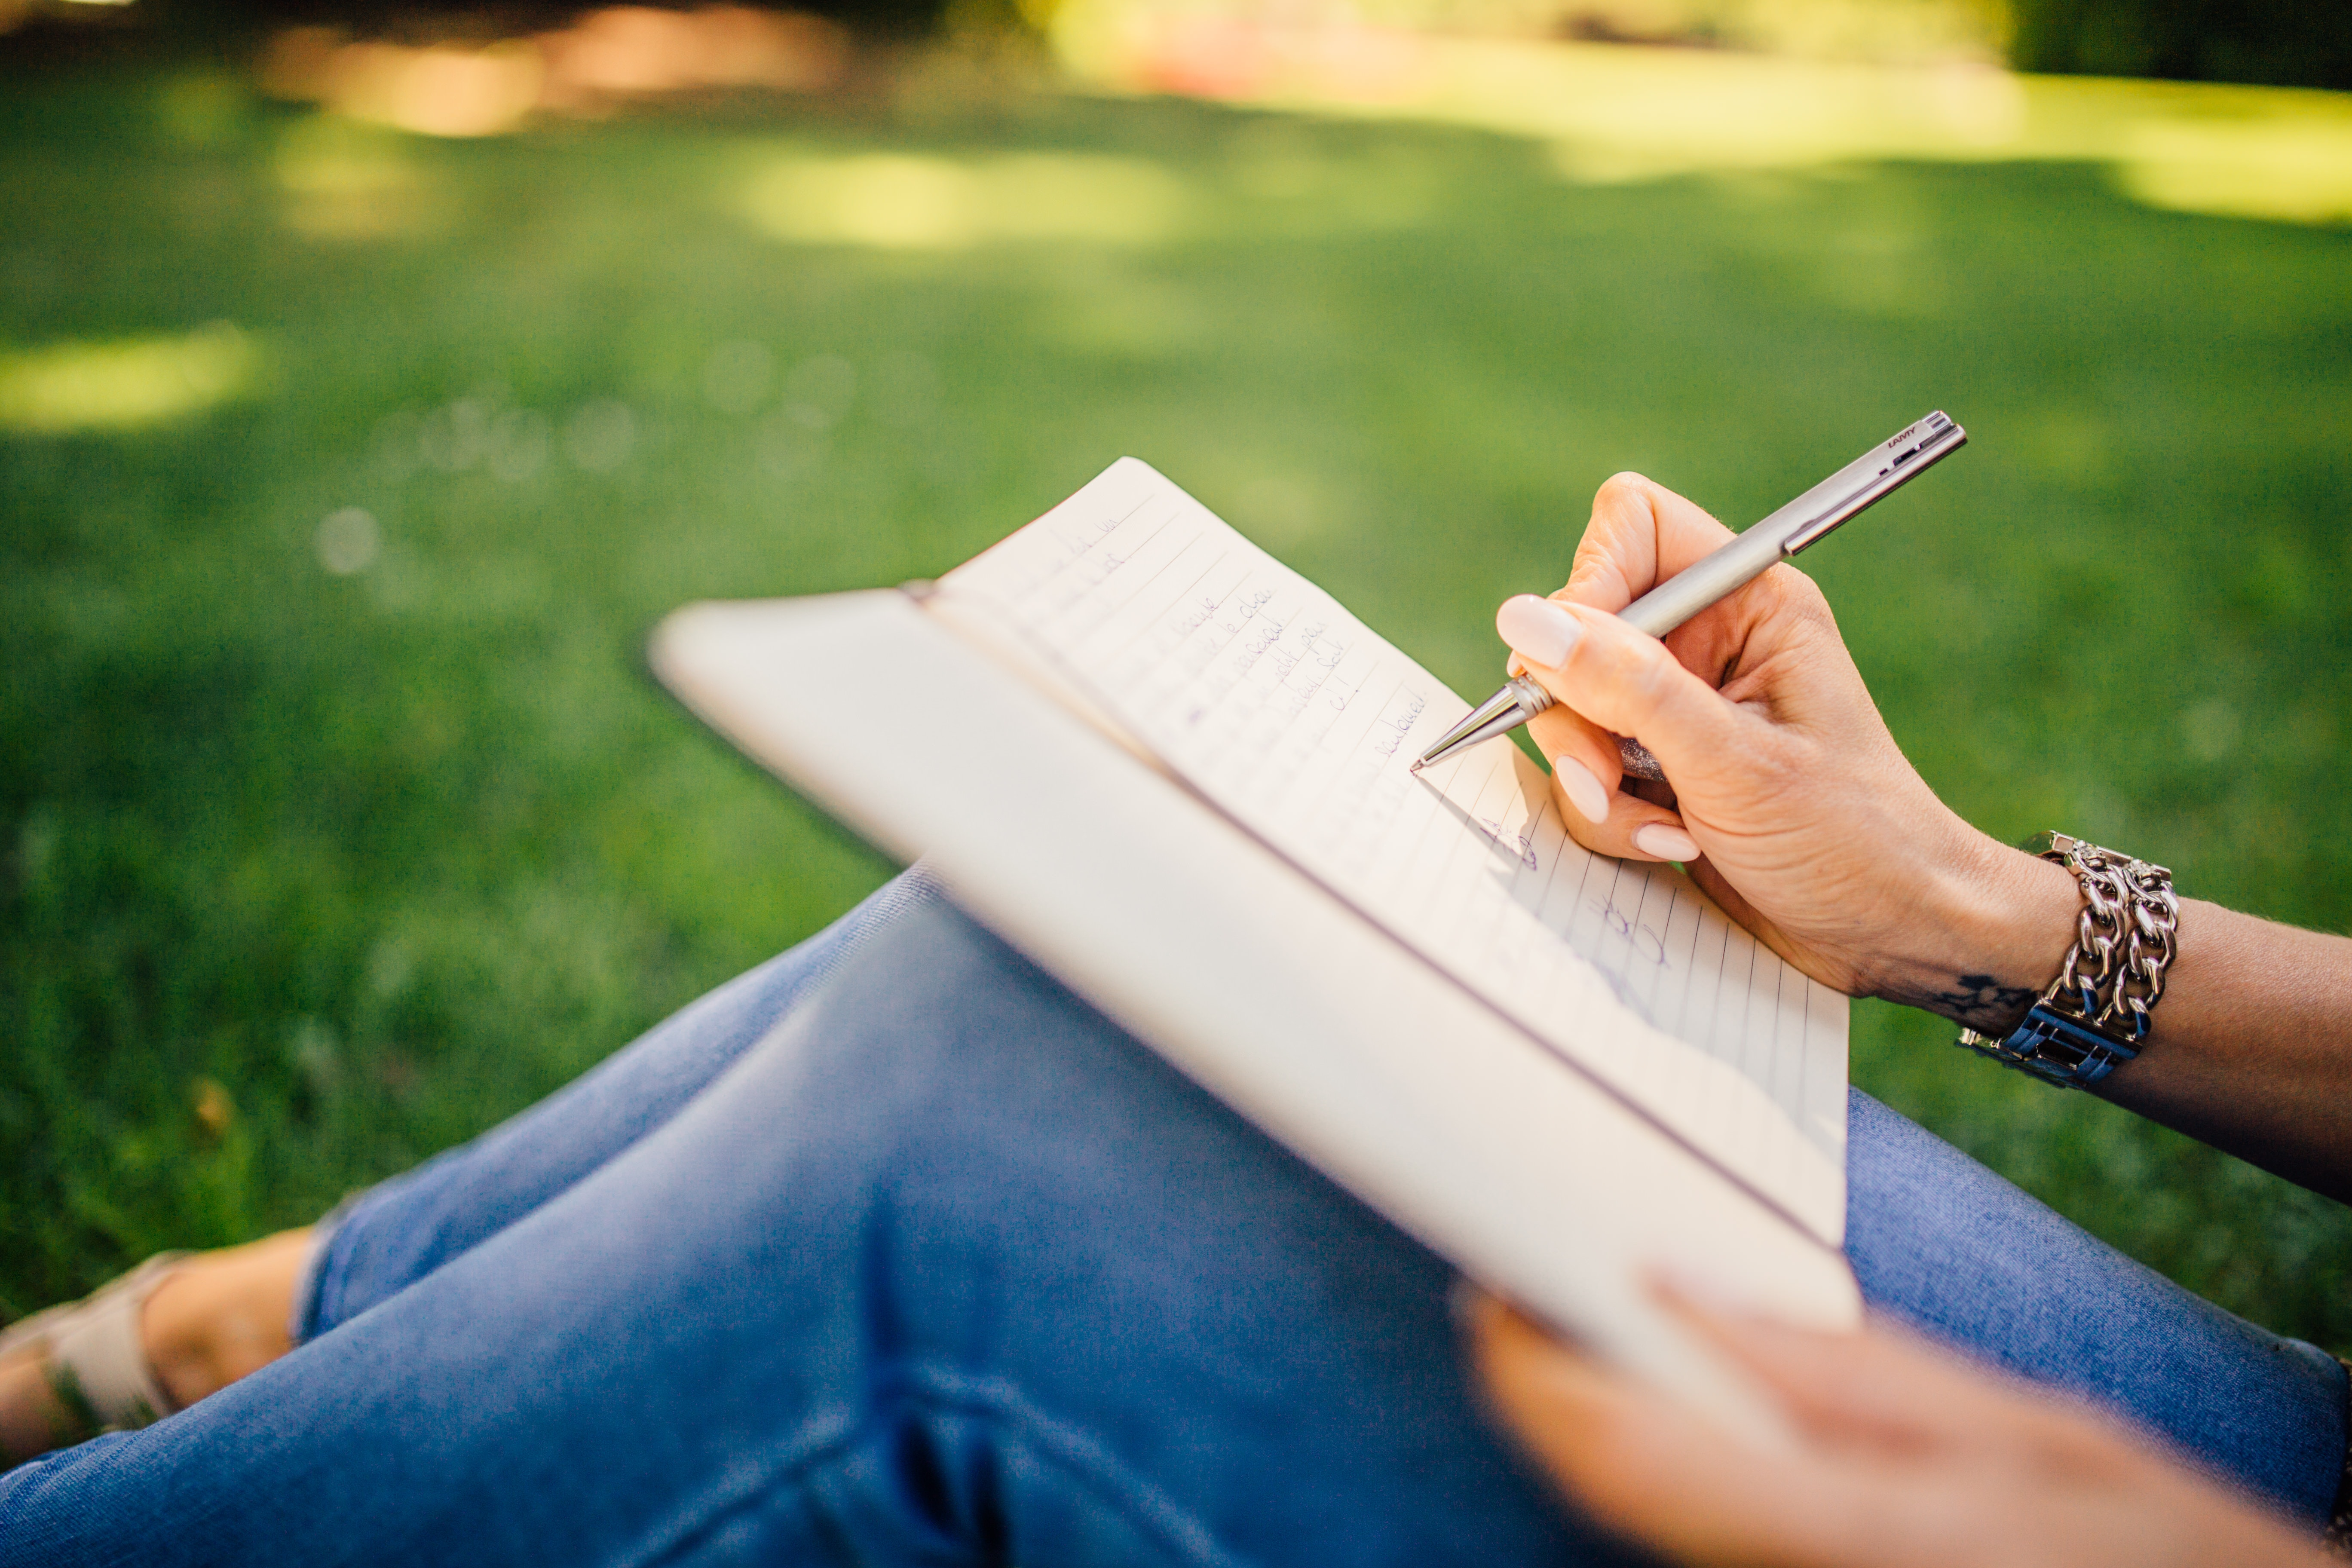 Close up of woman writing in notebook with a metal pen while sitting in the grass.